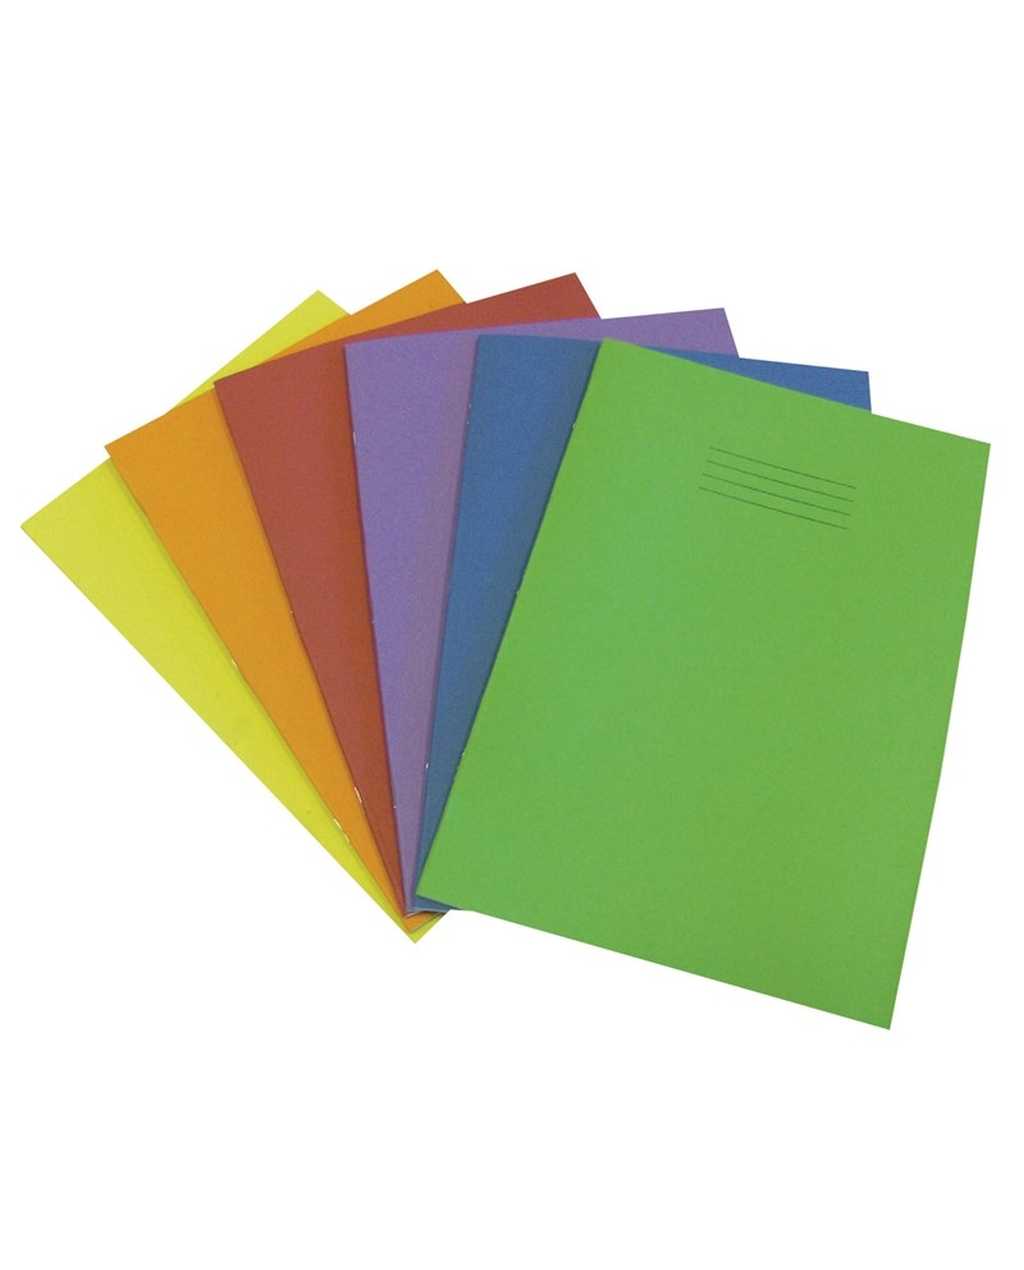 Exercise Book A4 (297 x 210mm) Light Blue Cover Half 13mm Ruled & Half Plain 32 Pages